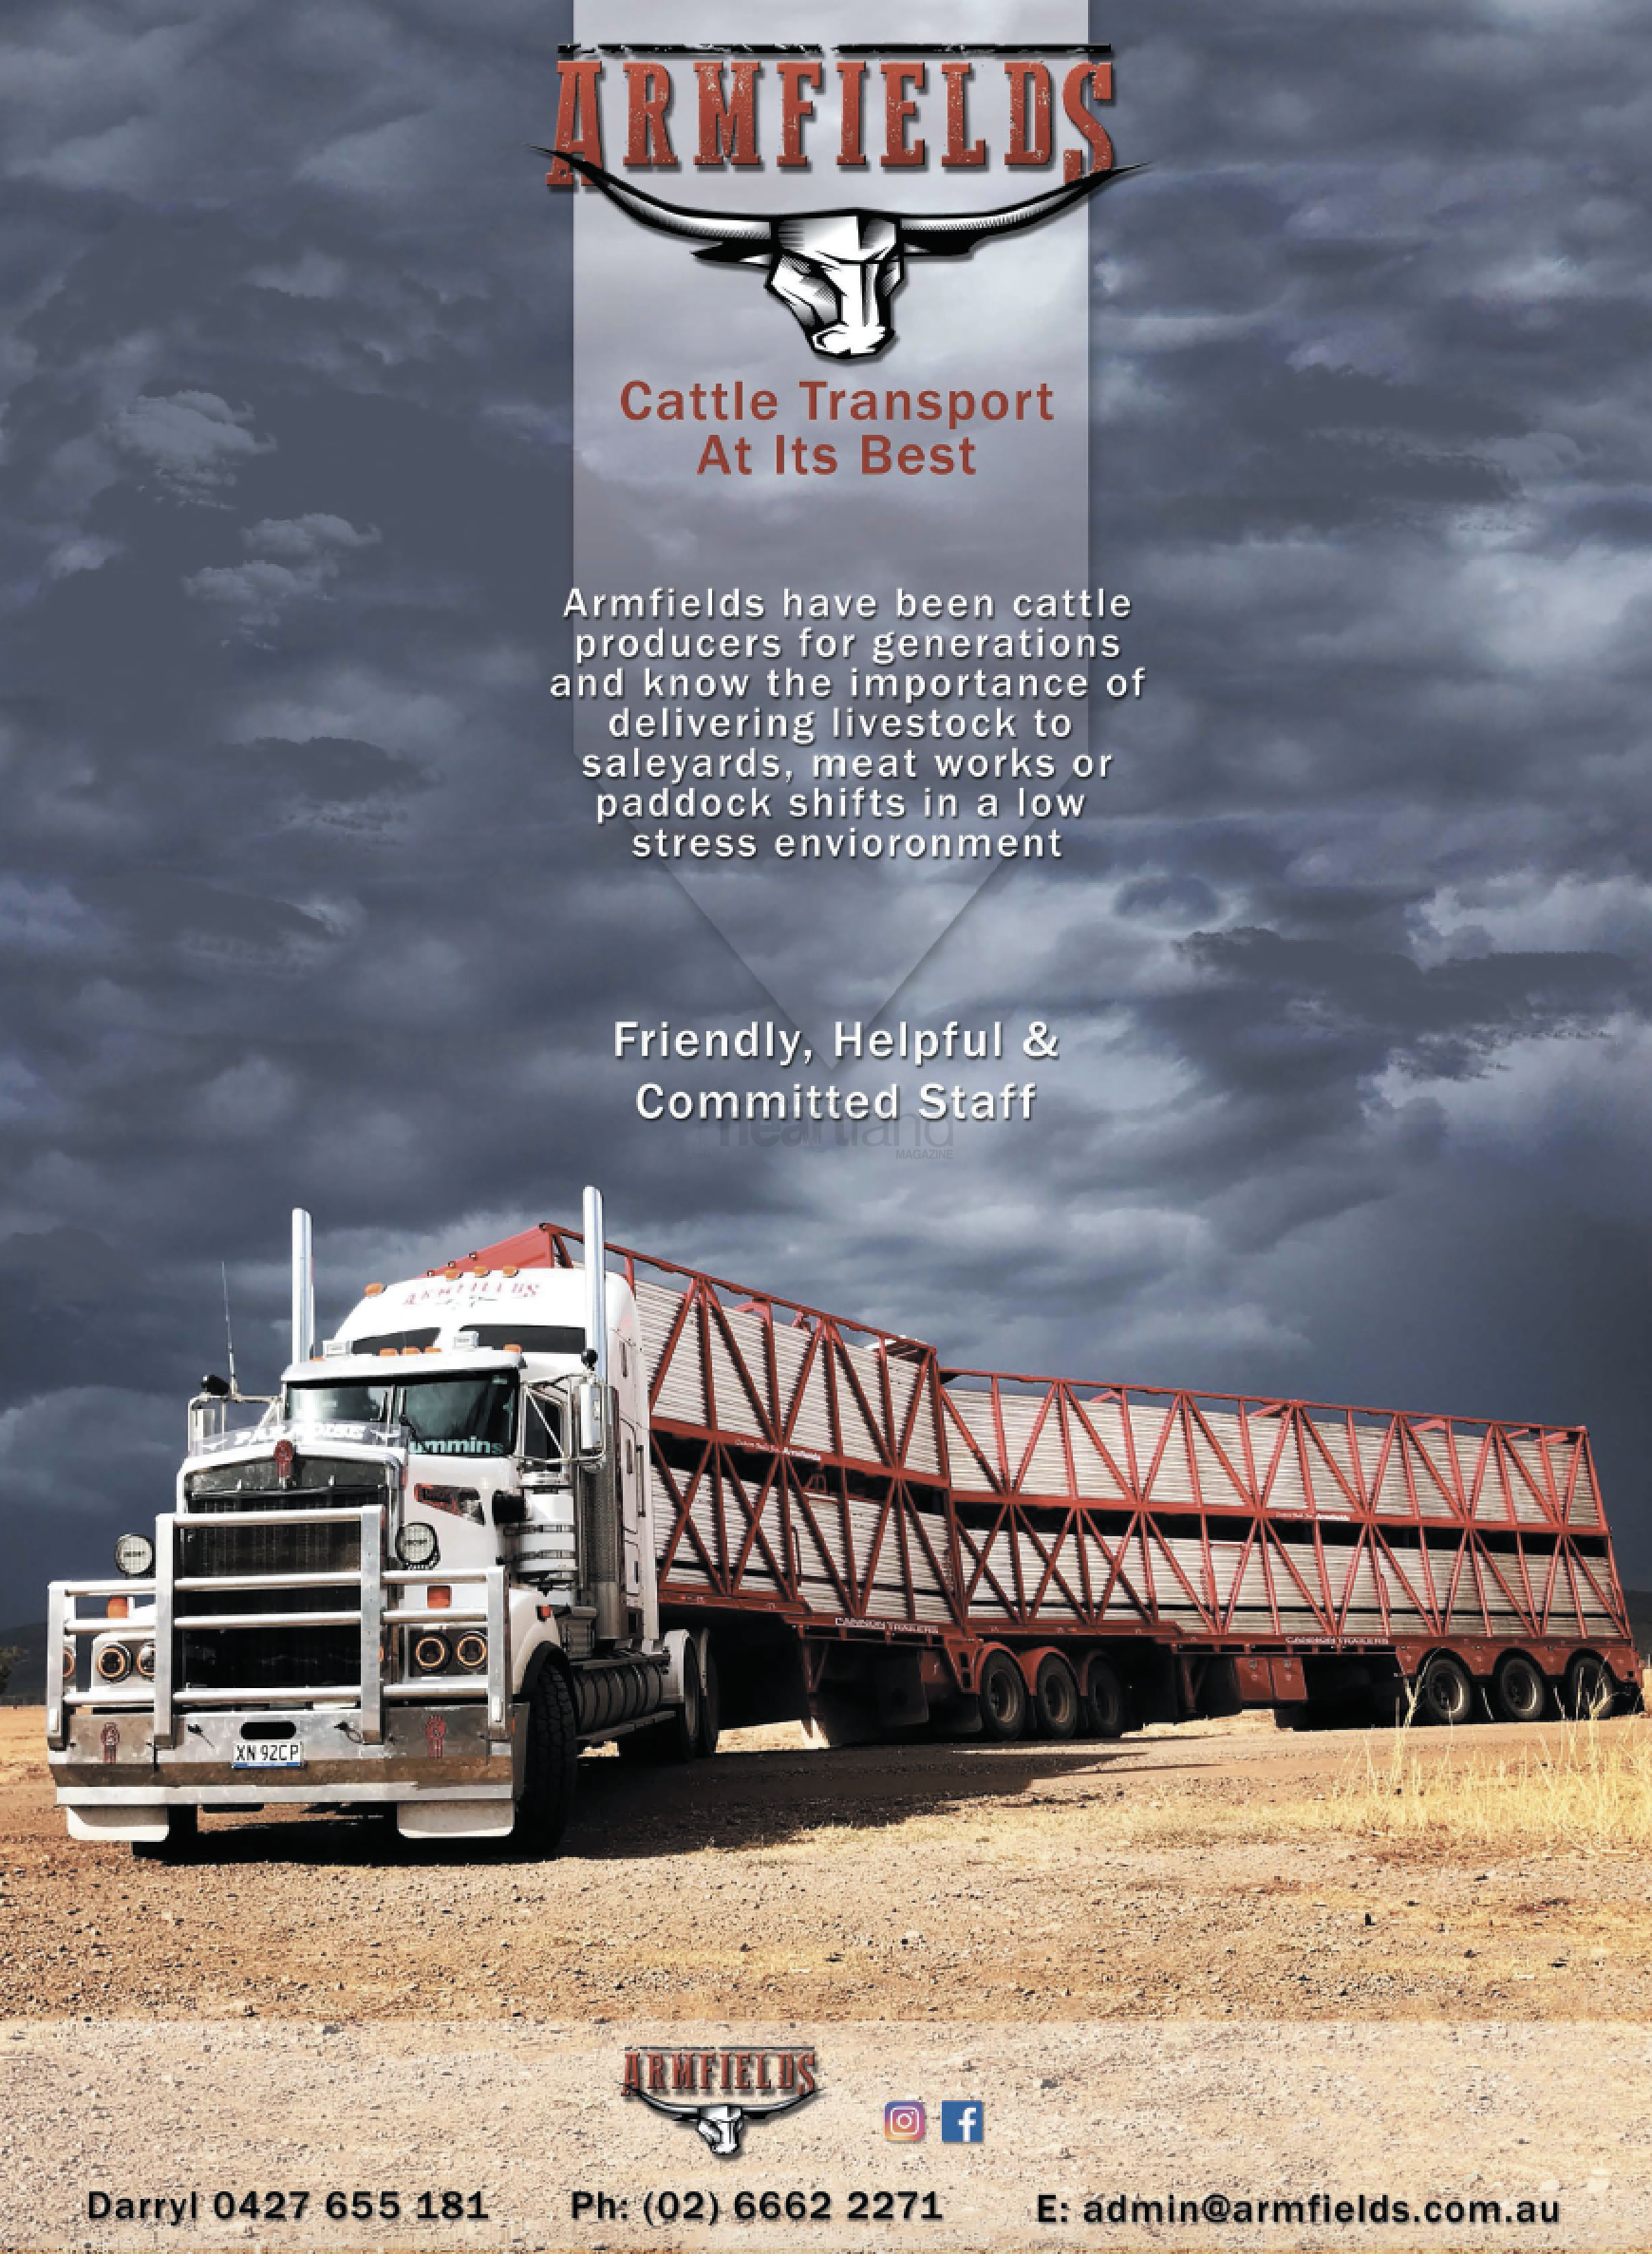 ARMFIELDS CATTLE TRANSPORT, Heartland Magazine NSW